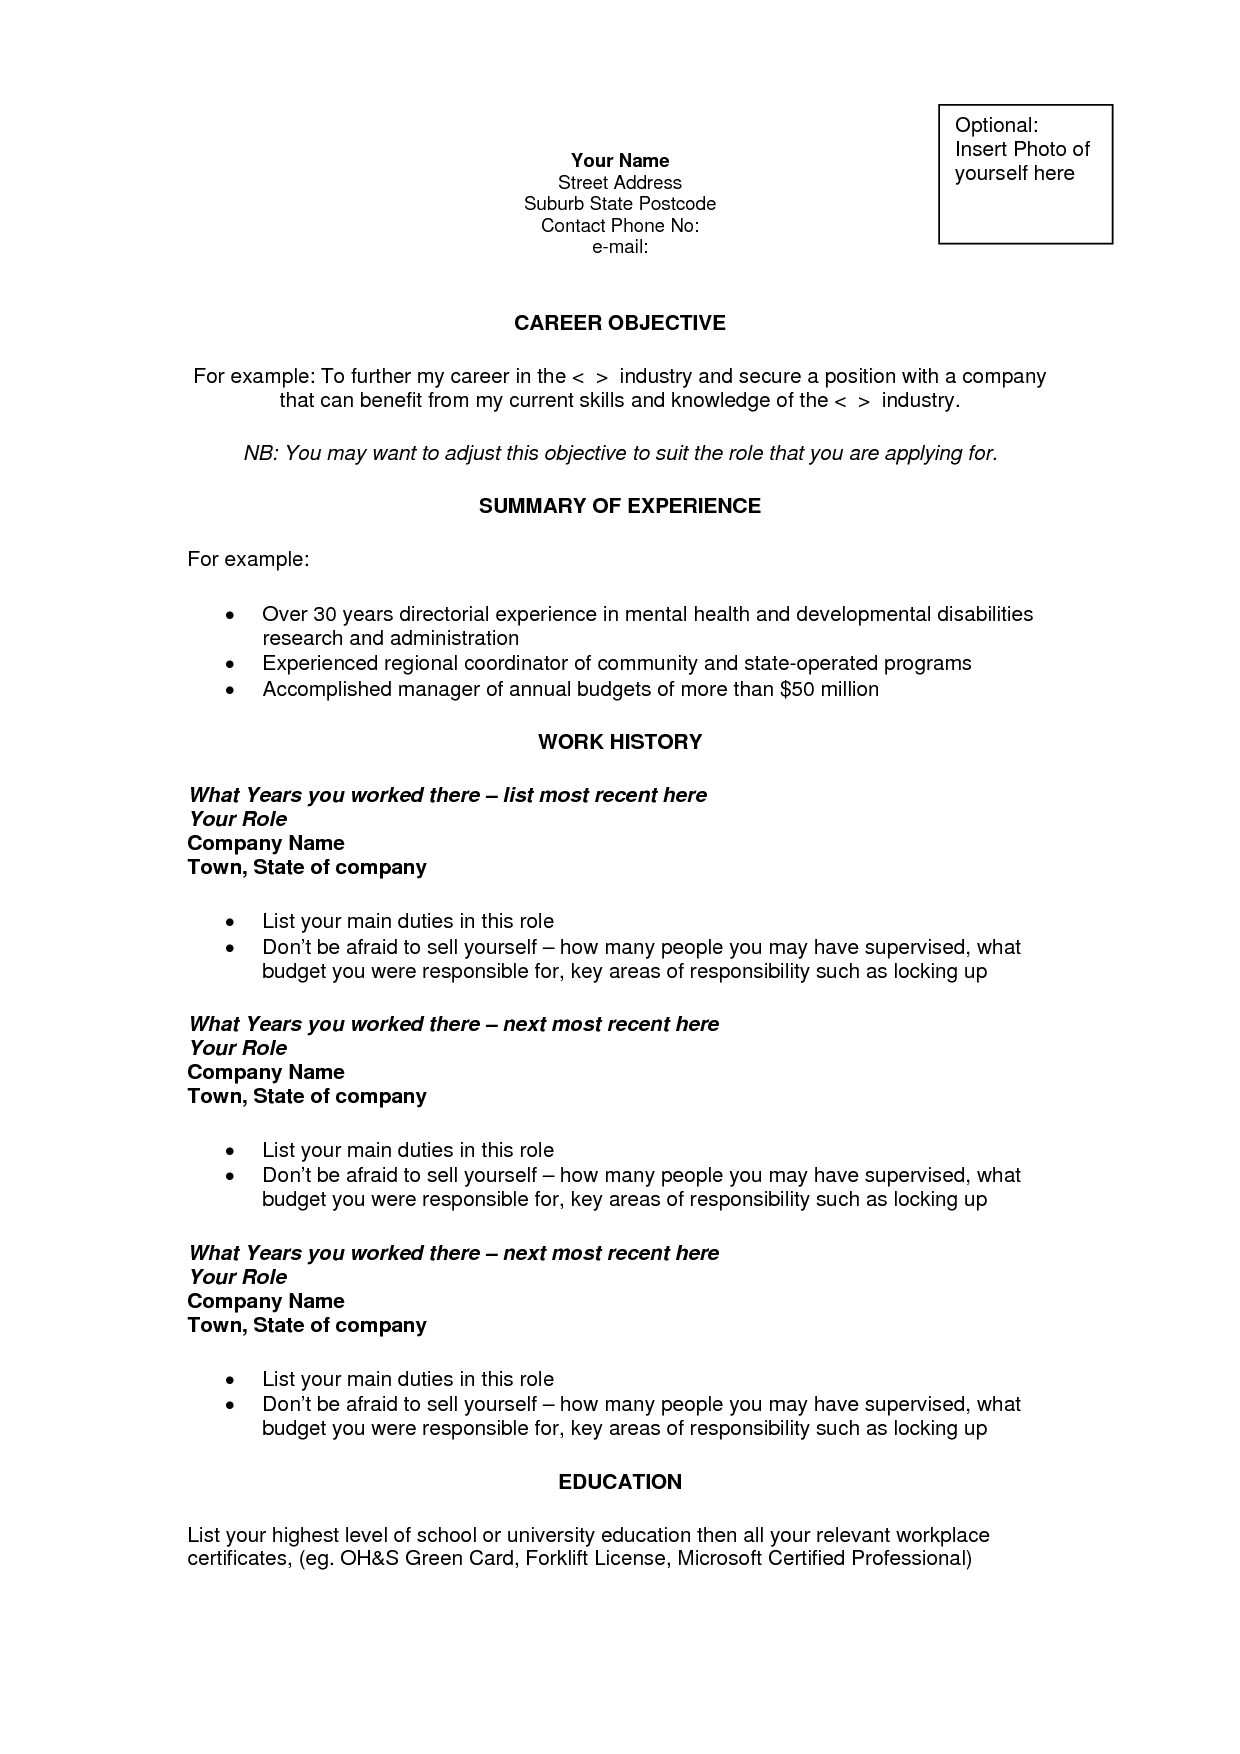 resume objective summary examples career objective resume images and summary experience sample career objective resume images